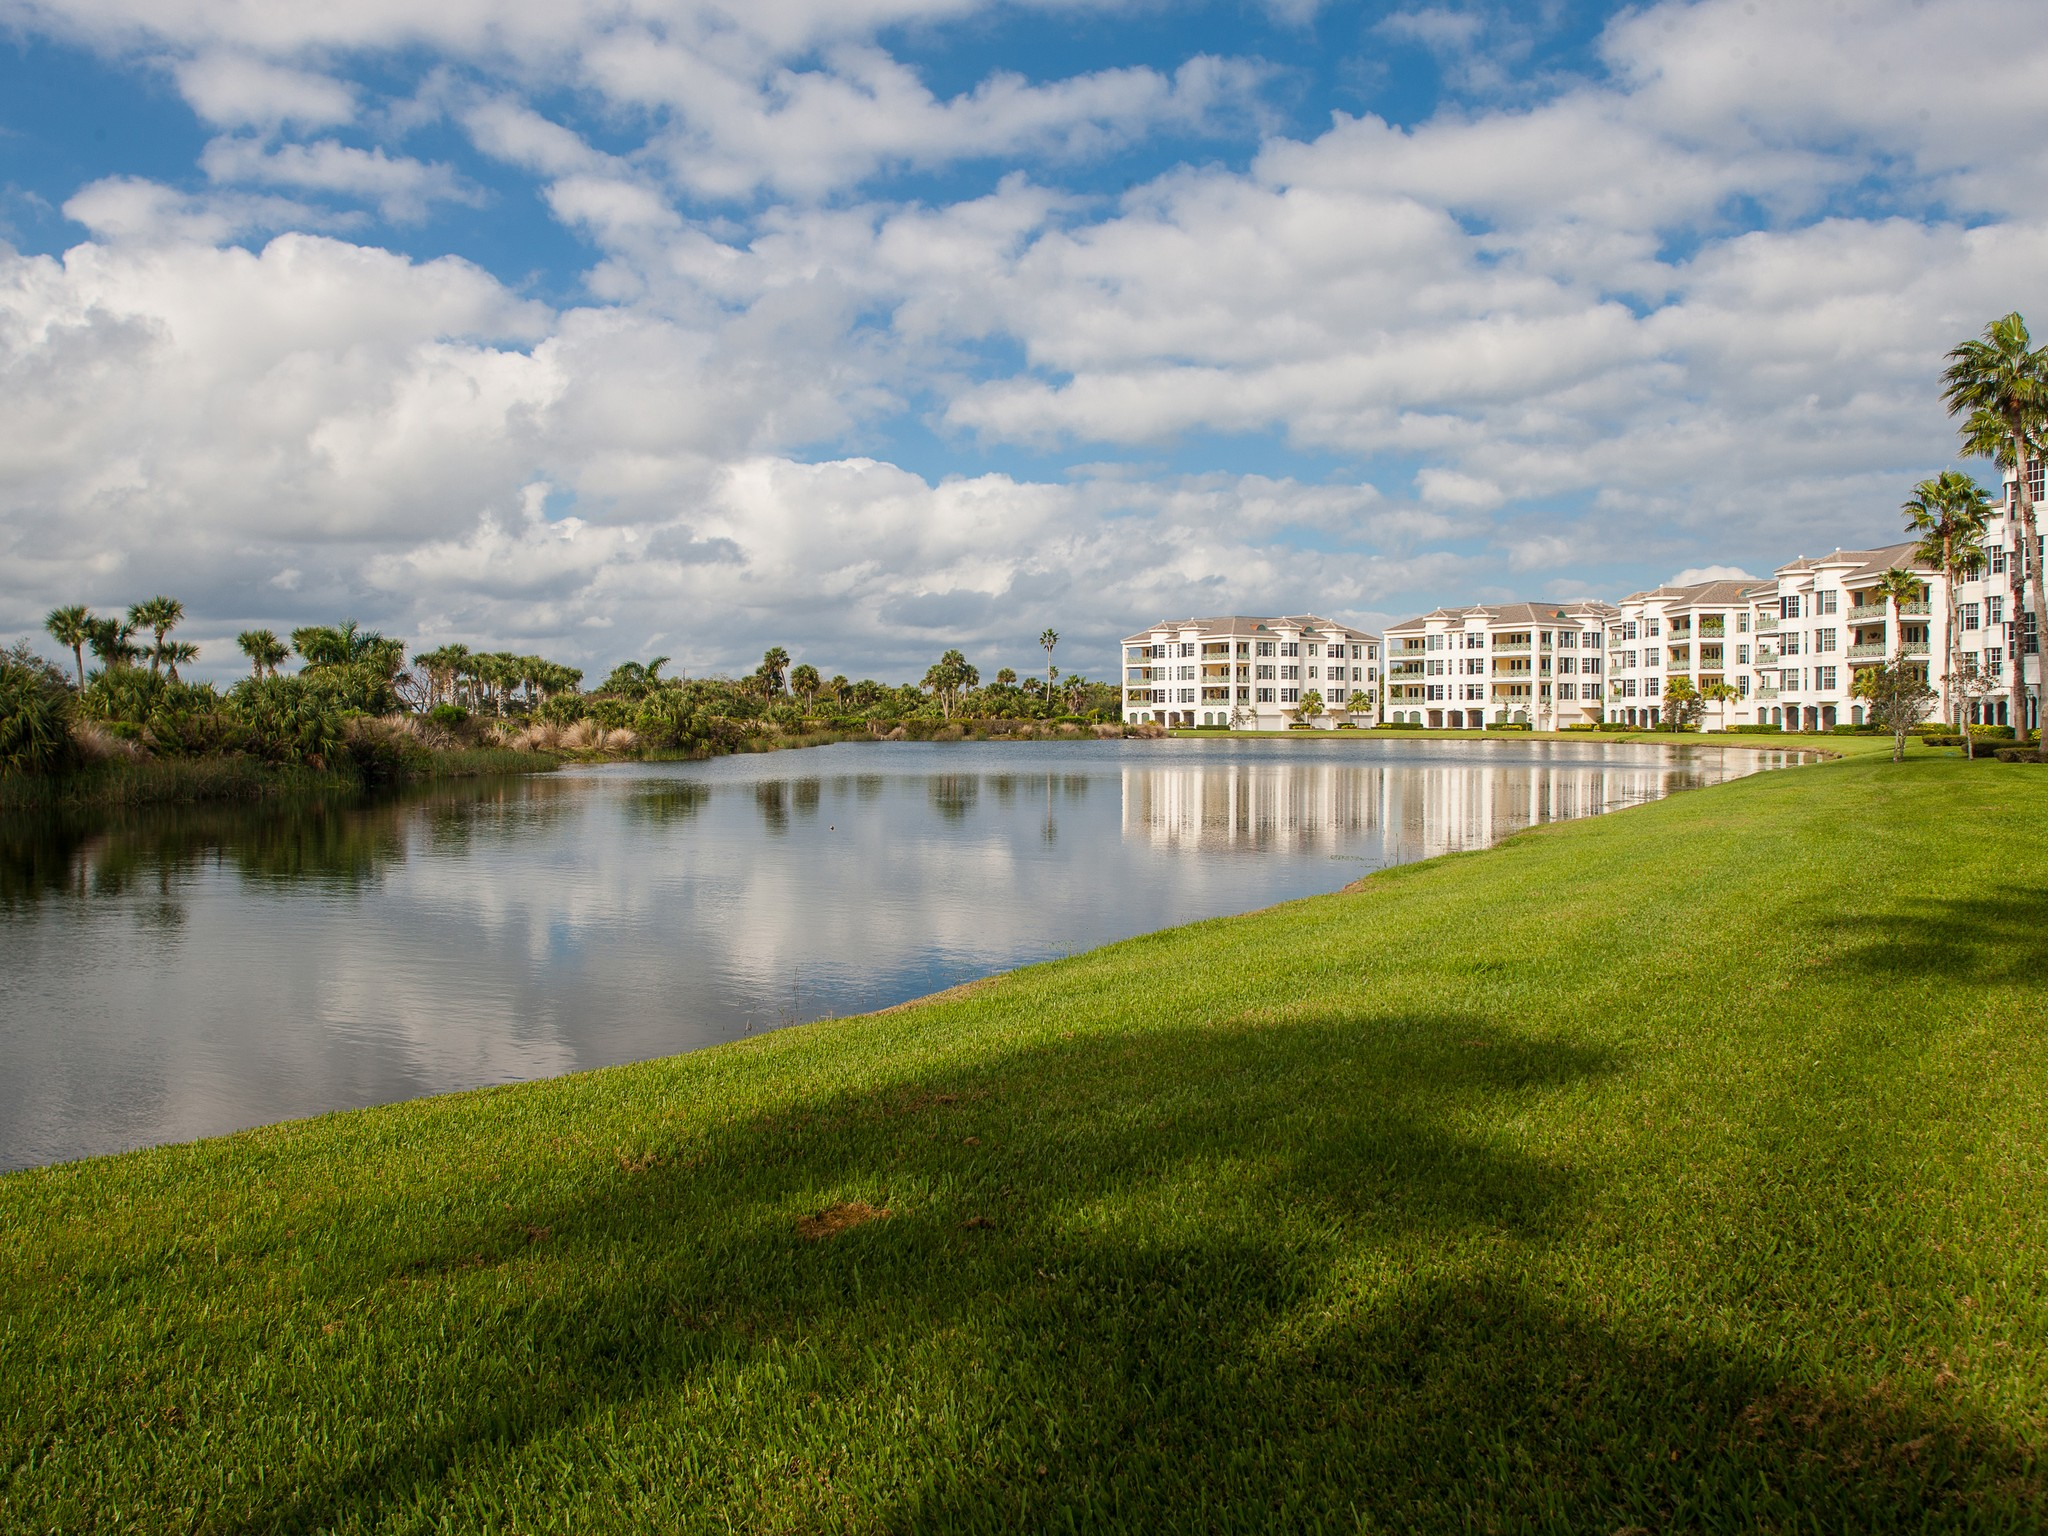 Condominium for Sale at Panoramic Views of Birds & Boats on the Intracoastal 9031 Somerset Bay Lane #302 Vero Beach, Florida 32963 United States